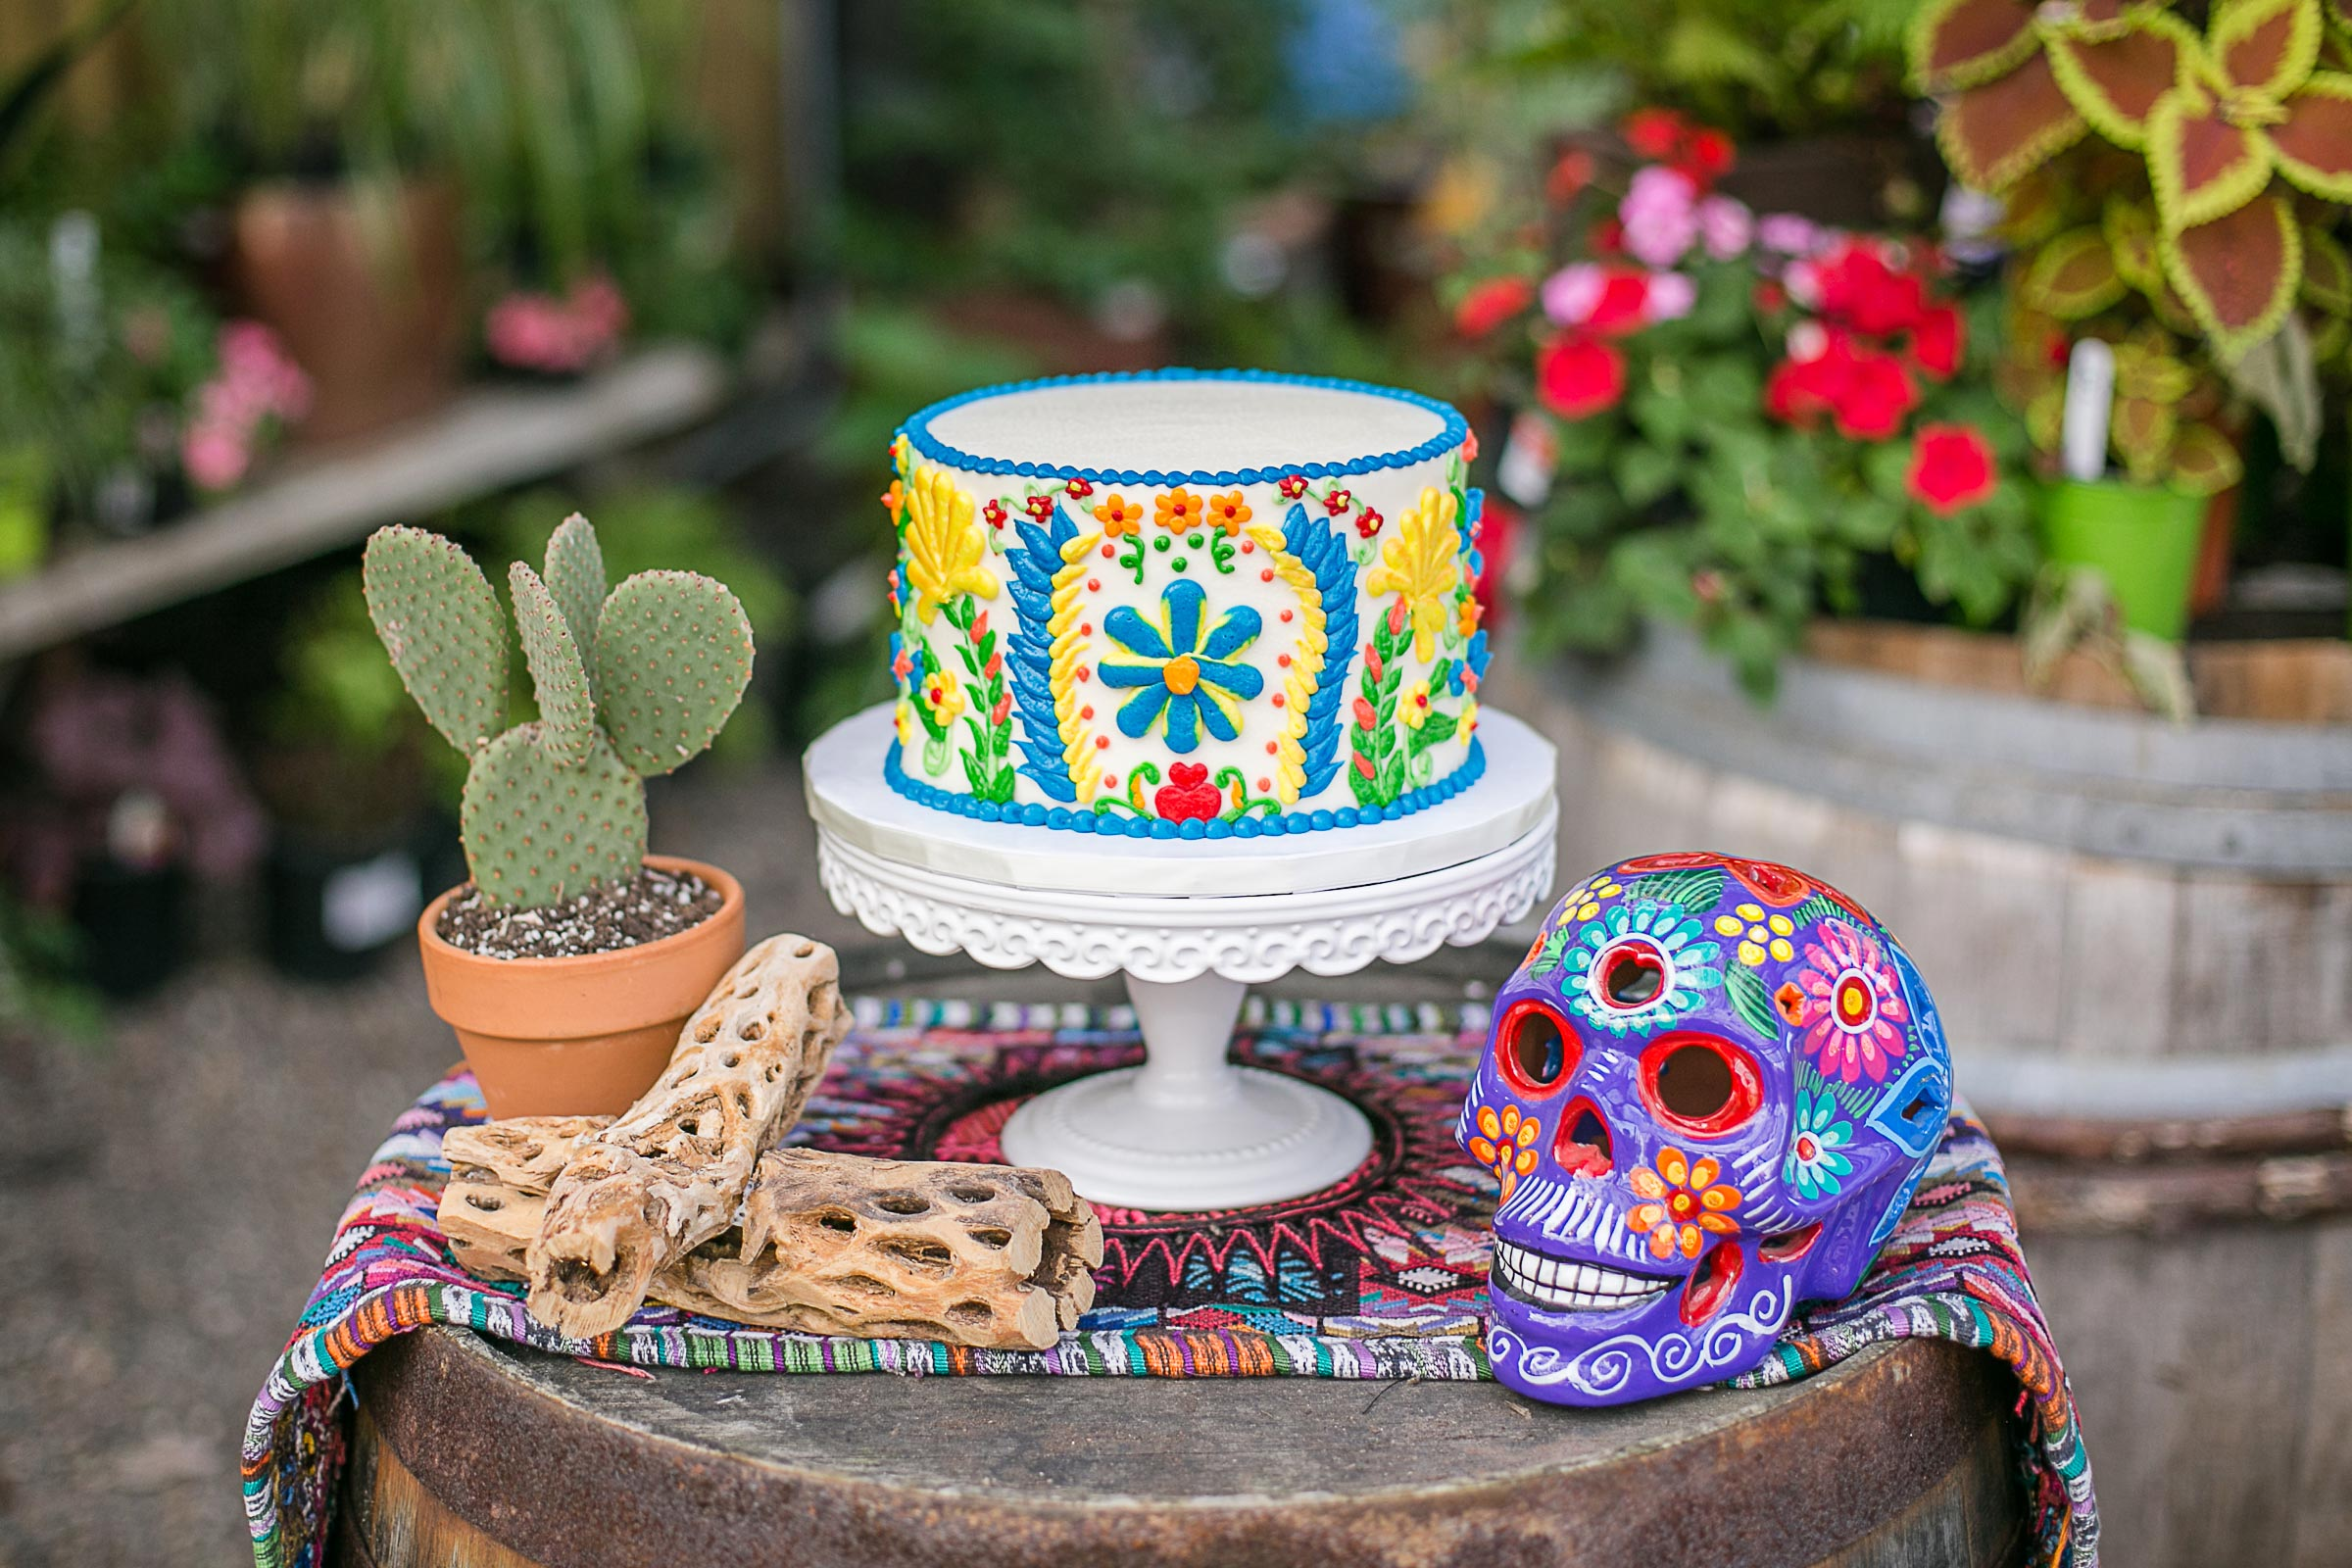 we started with a pretty simple idea a big bright joyful mexican bridal shower and incorporated all our own interpretations of that and came away with